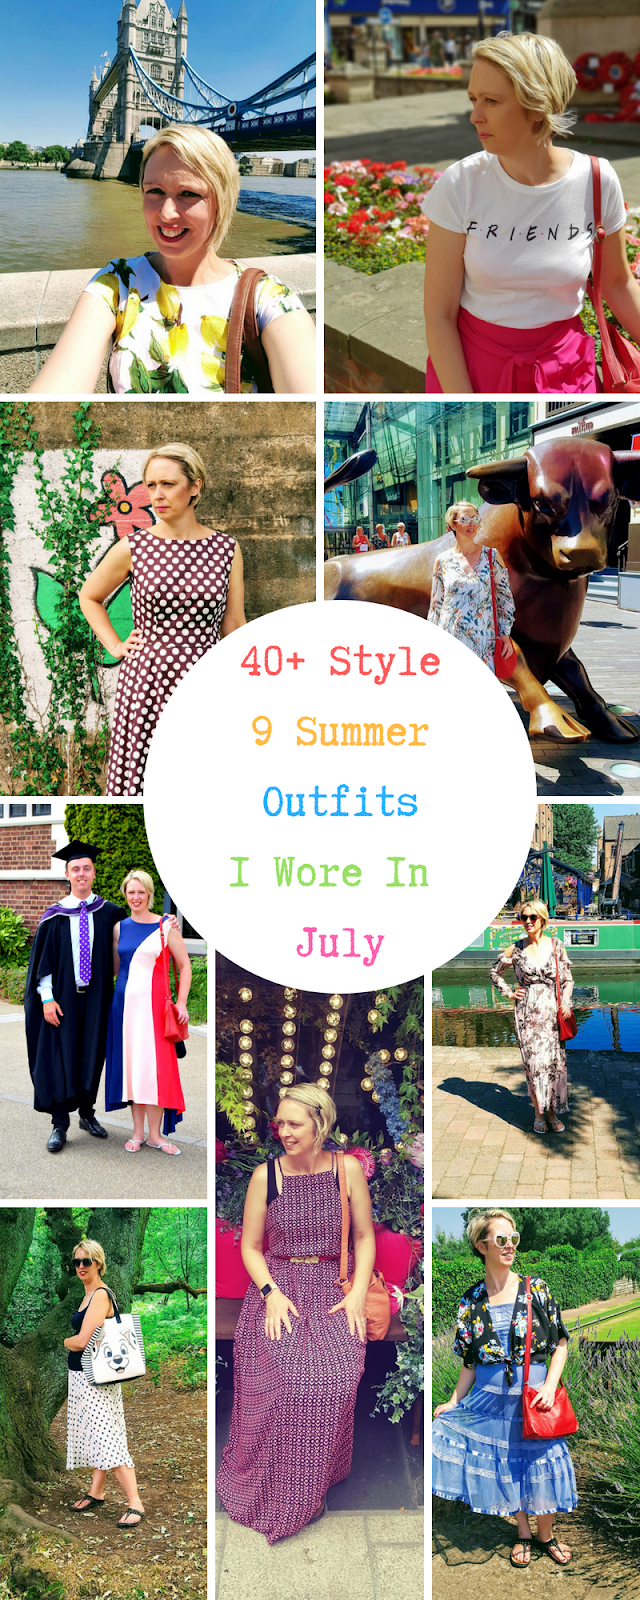 9 Summer Outfits I Wore In July